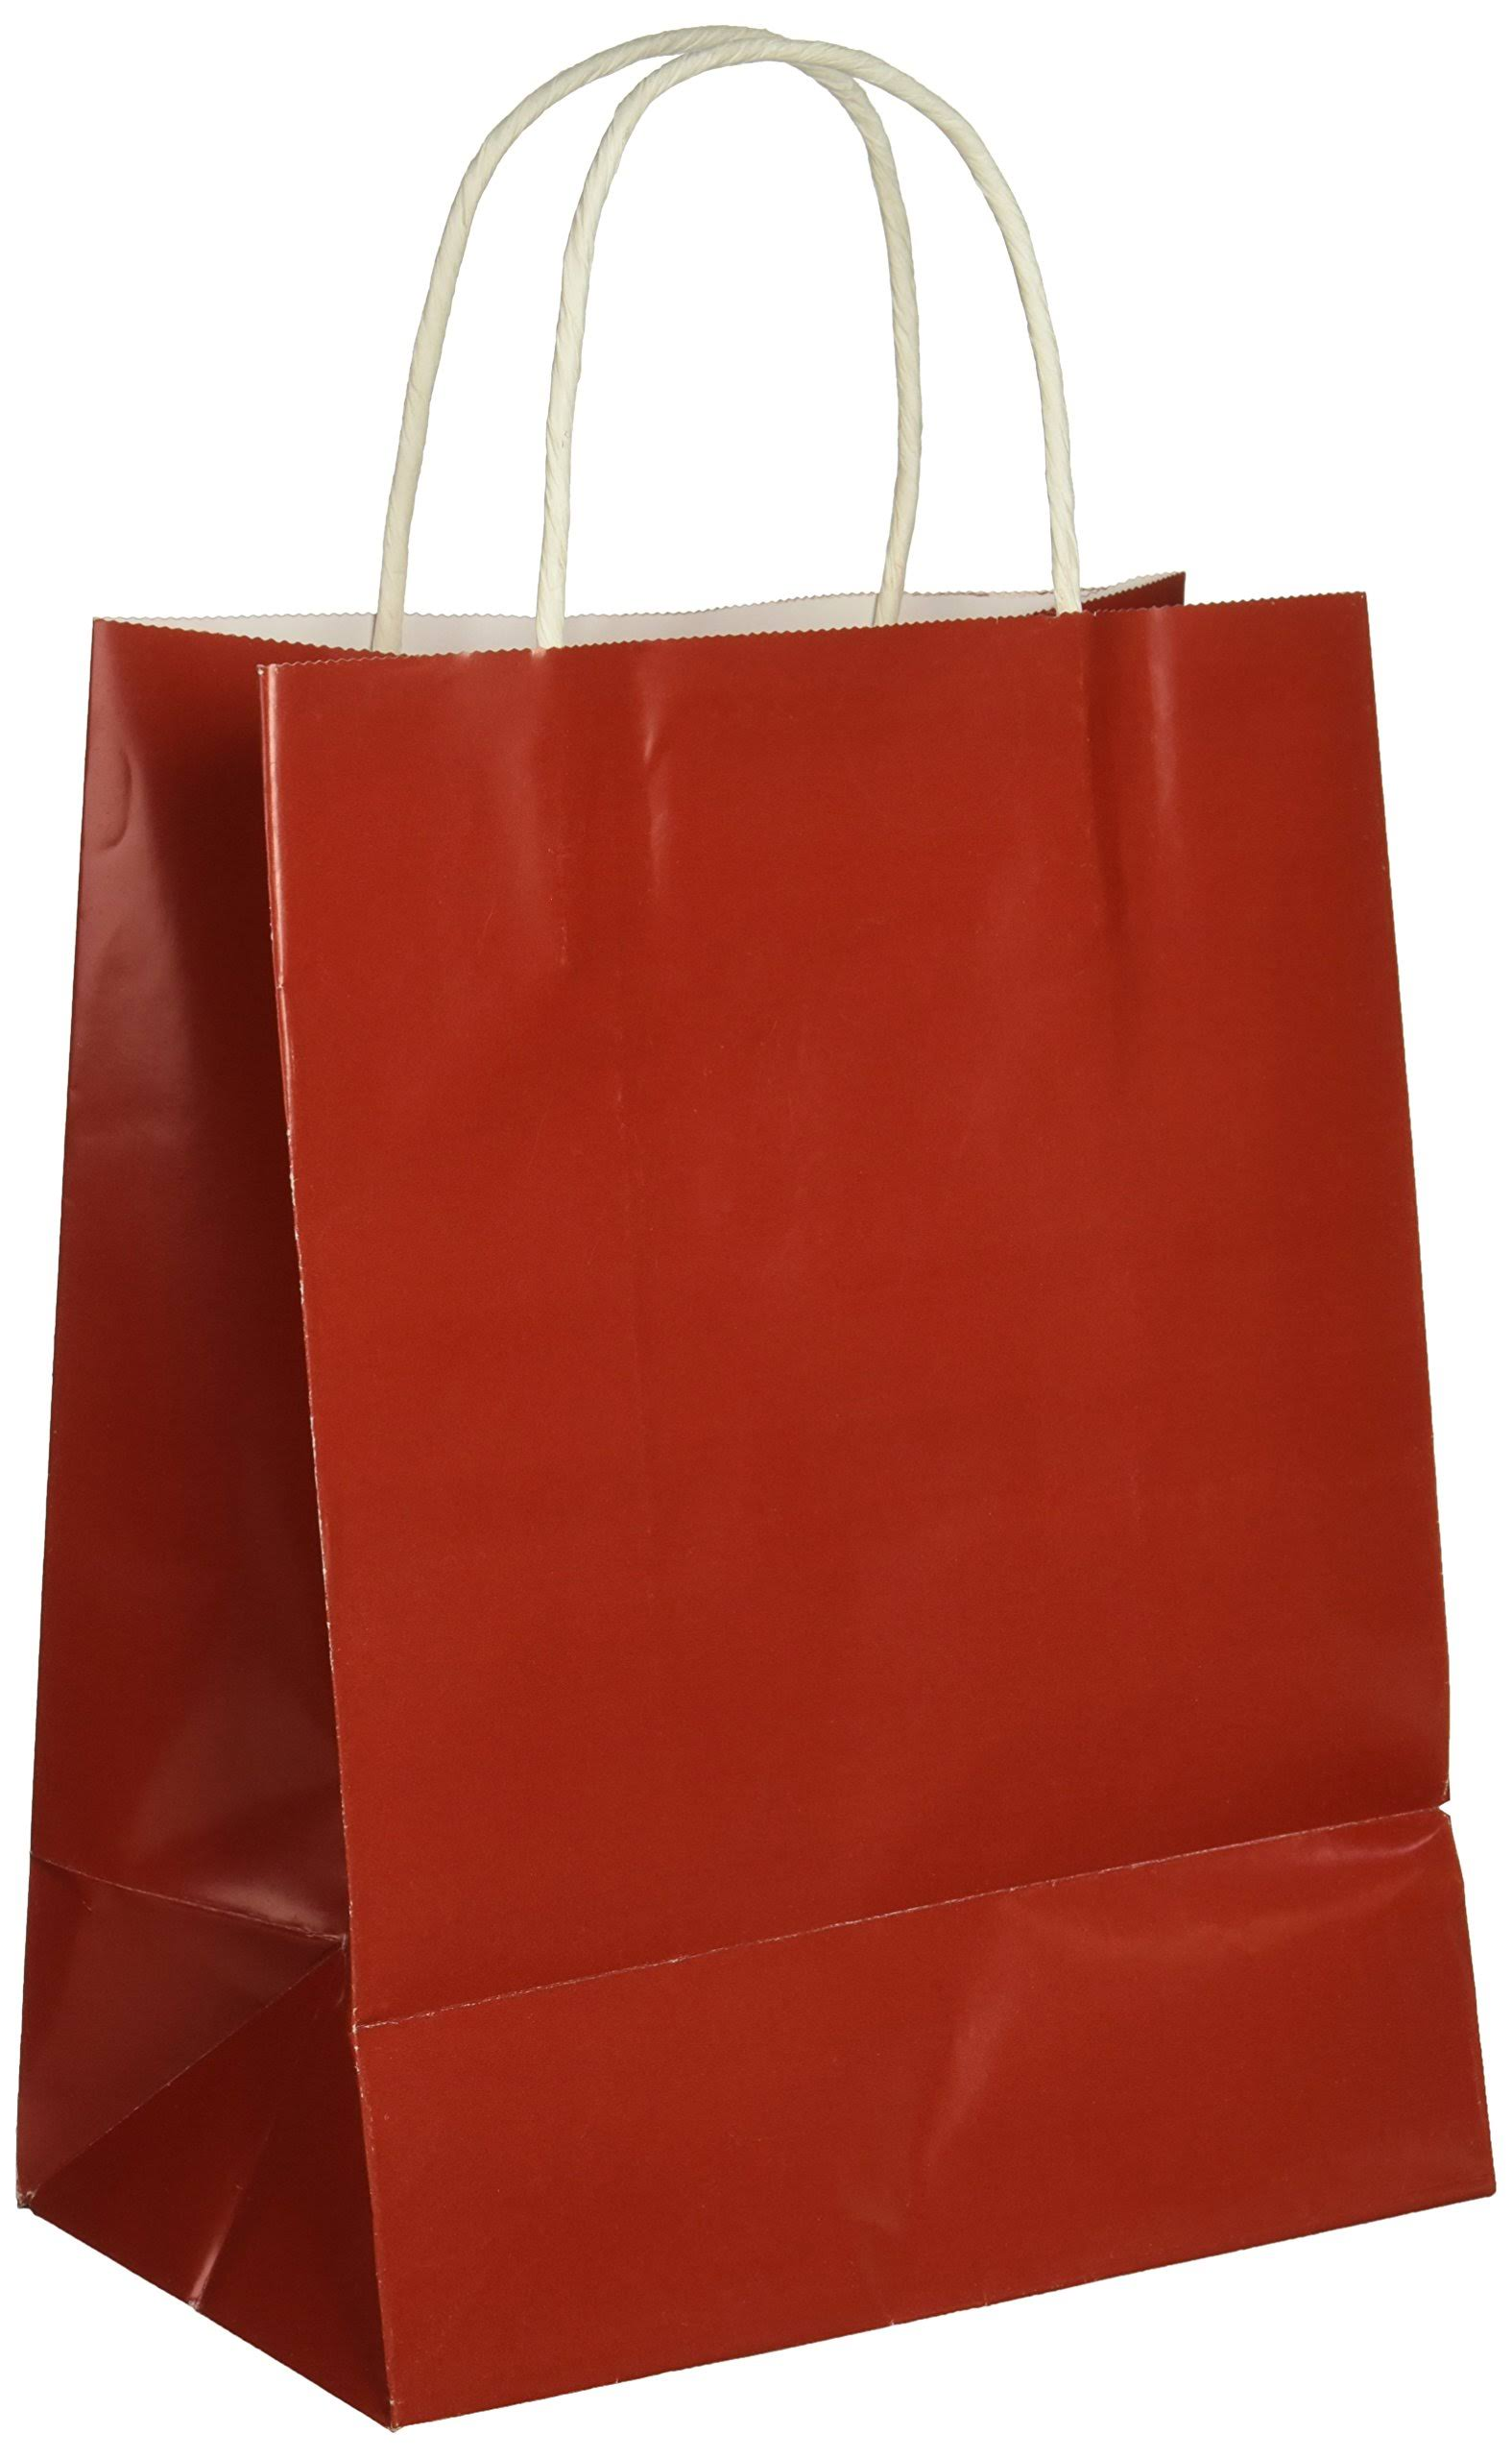 Darice 2607-40 1Piece, Paper Bag with Handles-Red